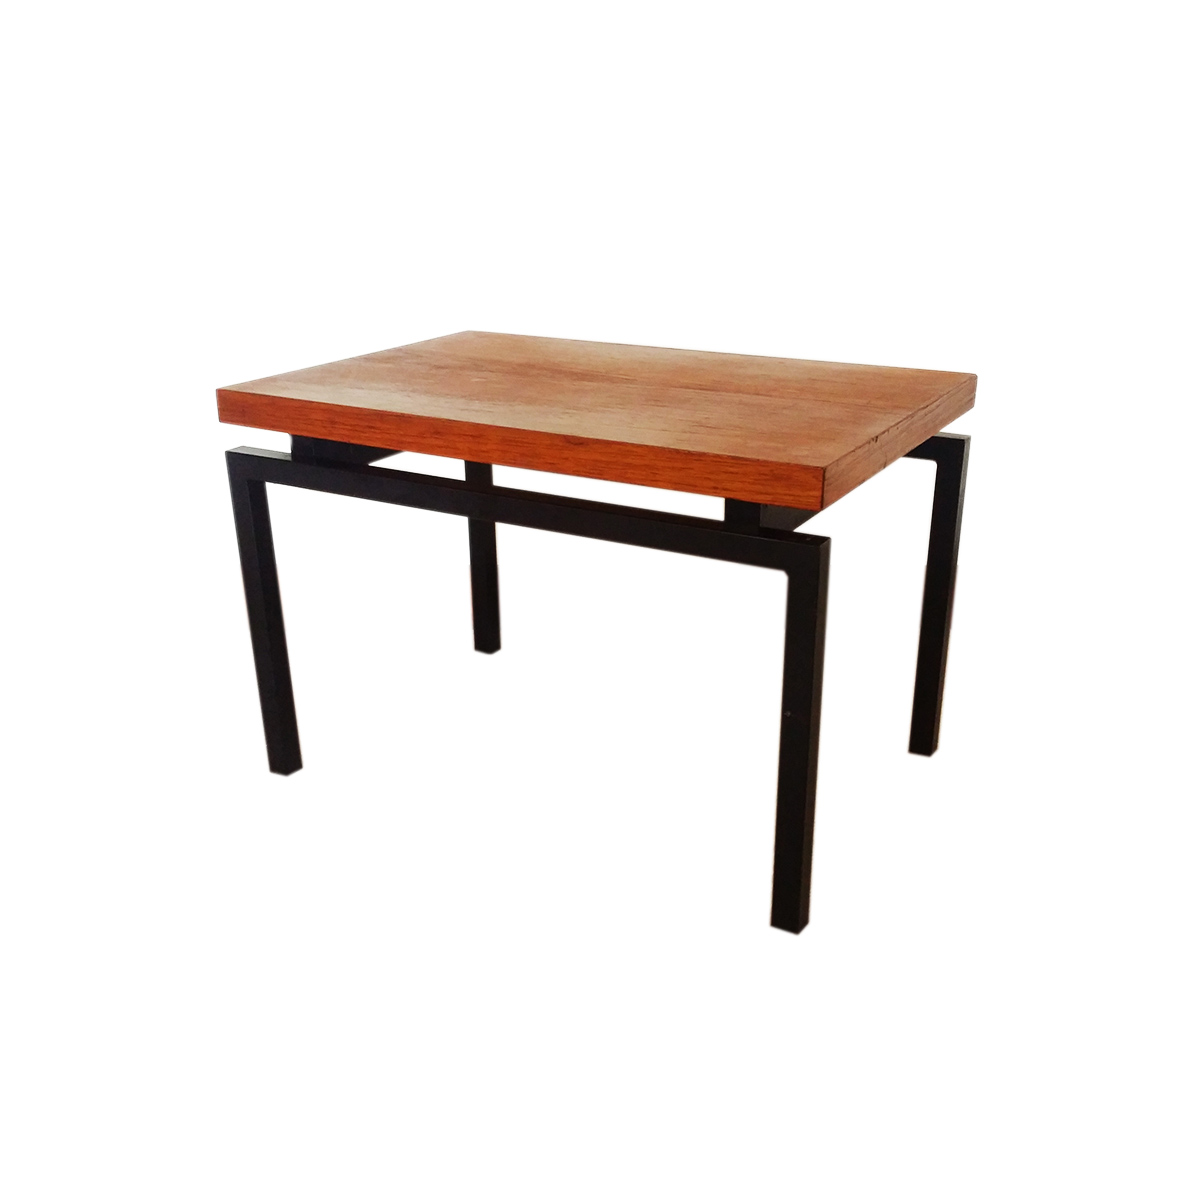 knol-teak-table